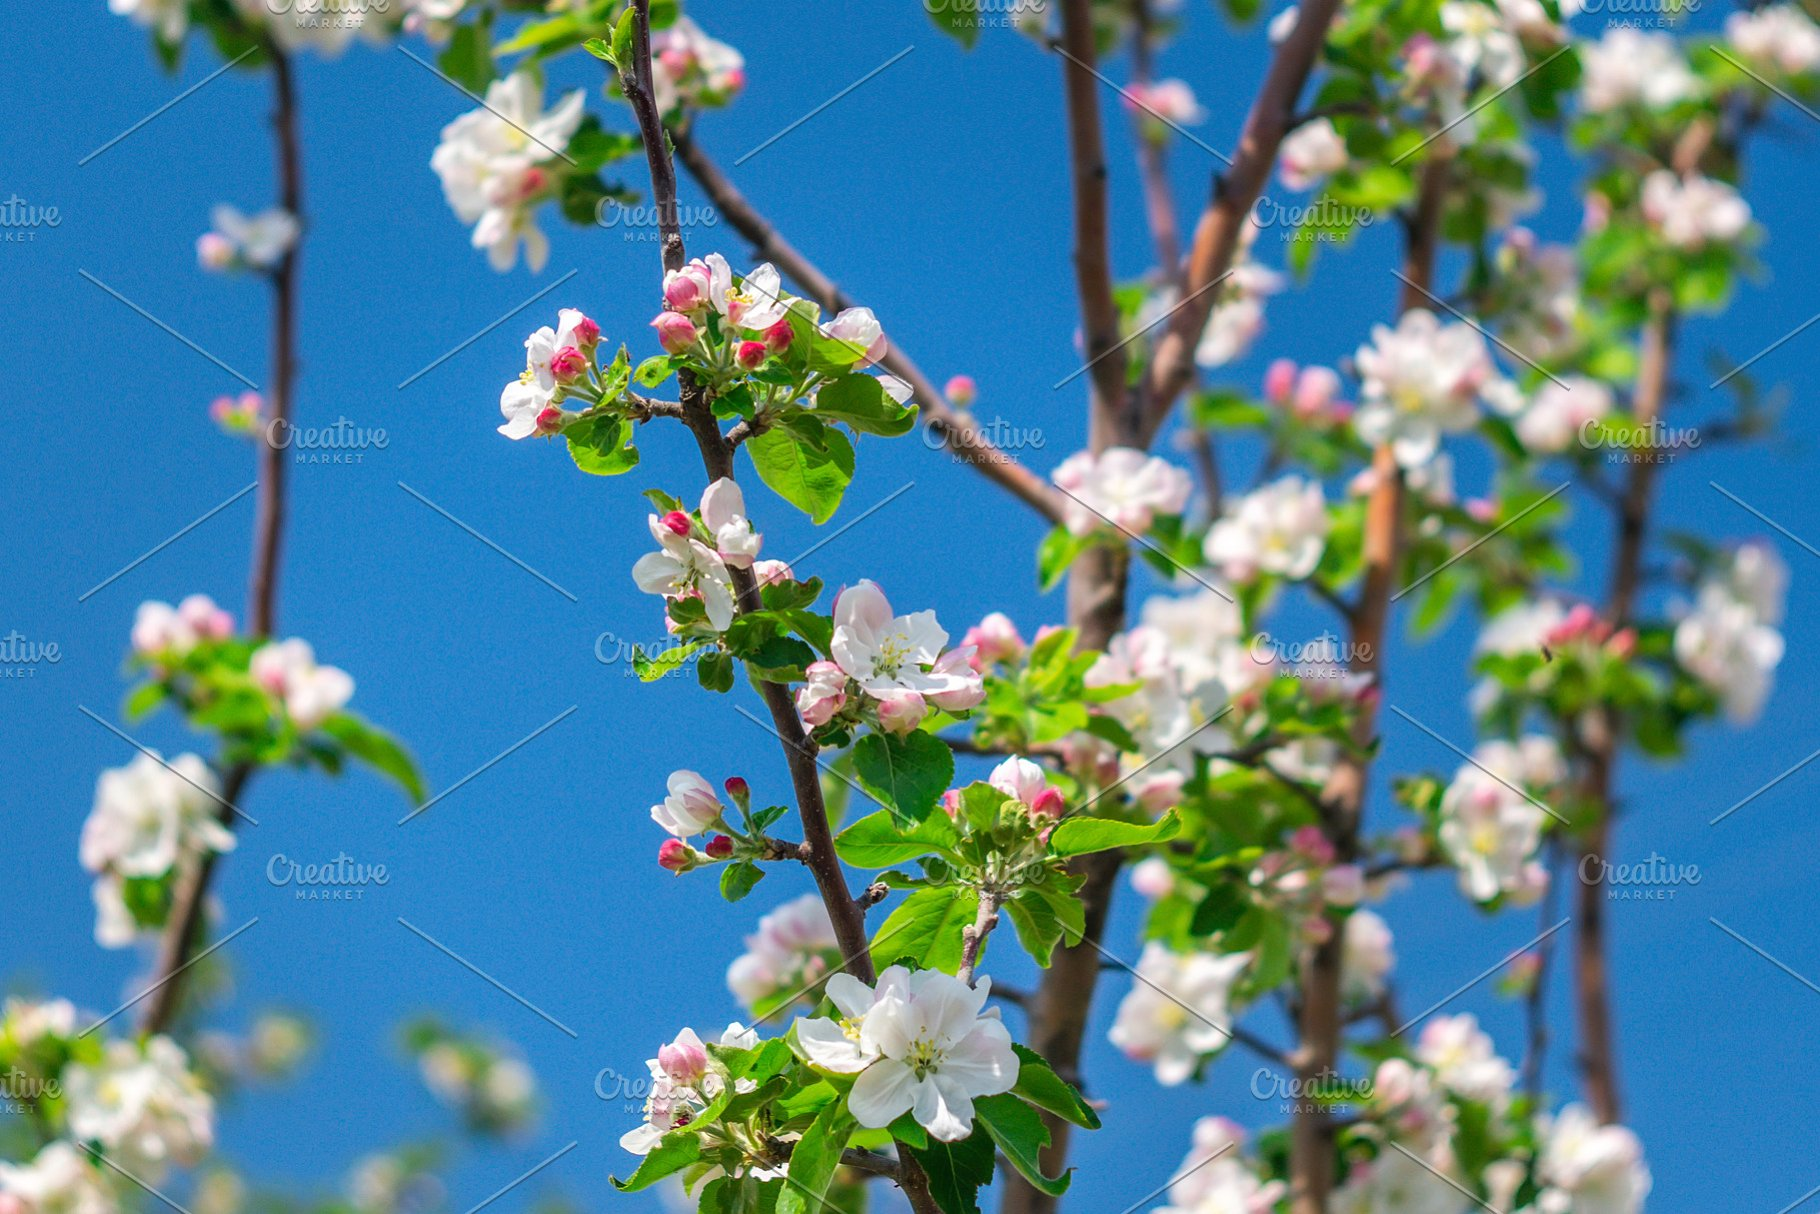 Apple Trees Flowers Beautiful High Quality Nature Stock Photos